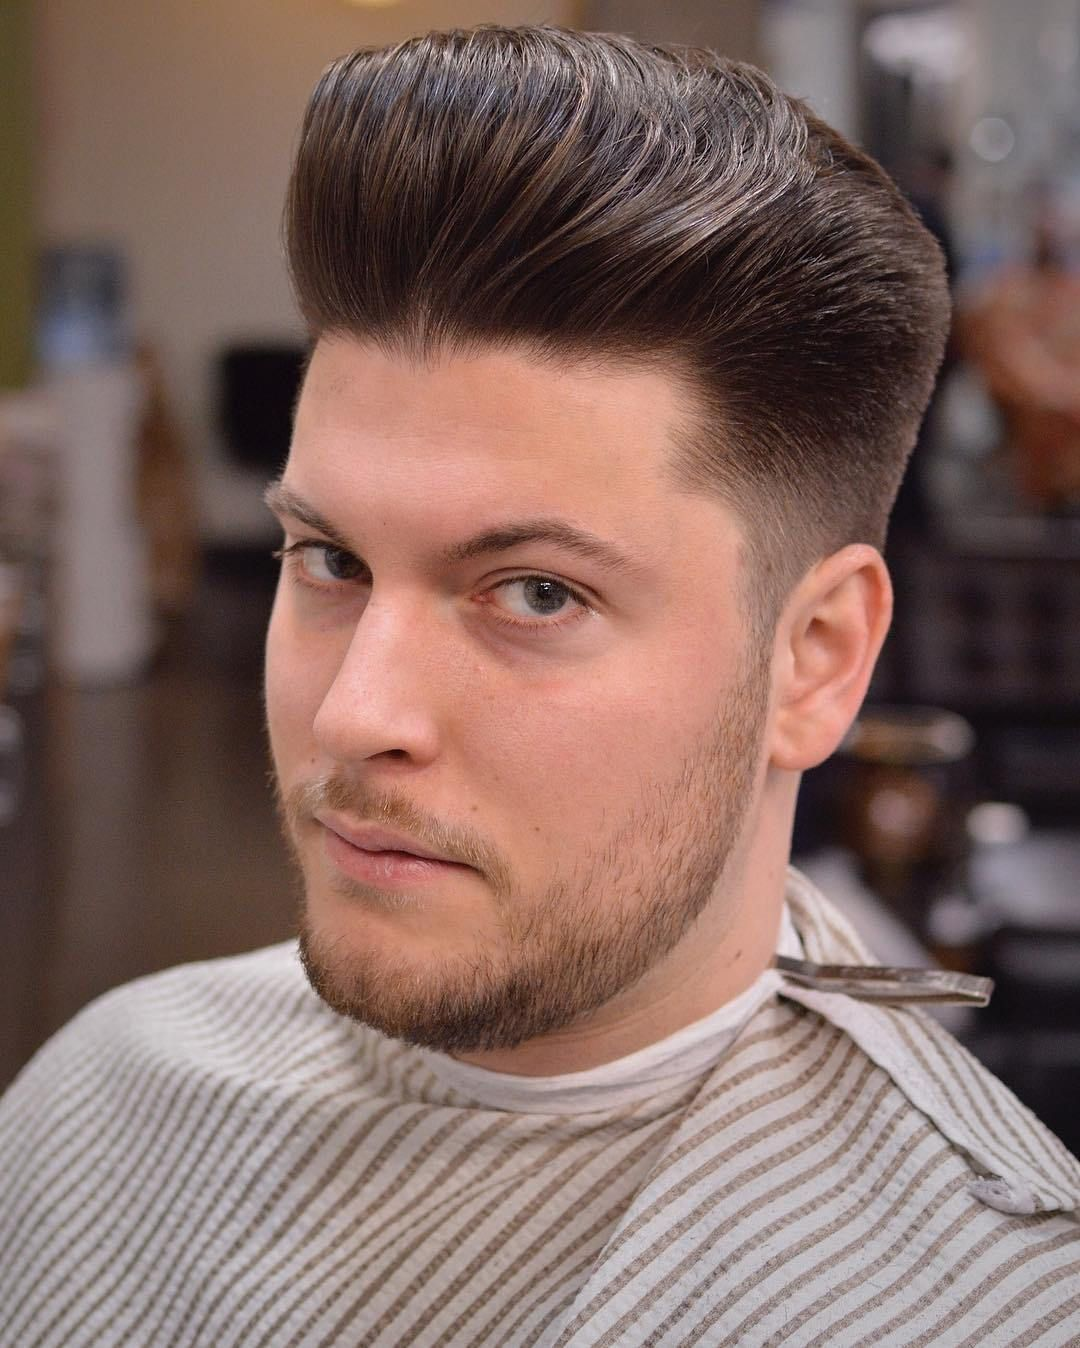 Hairstyles For Round Head Men